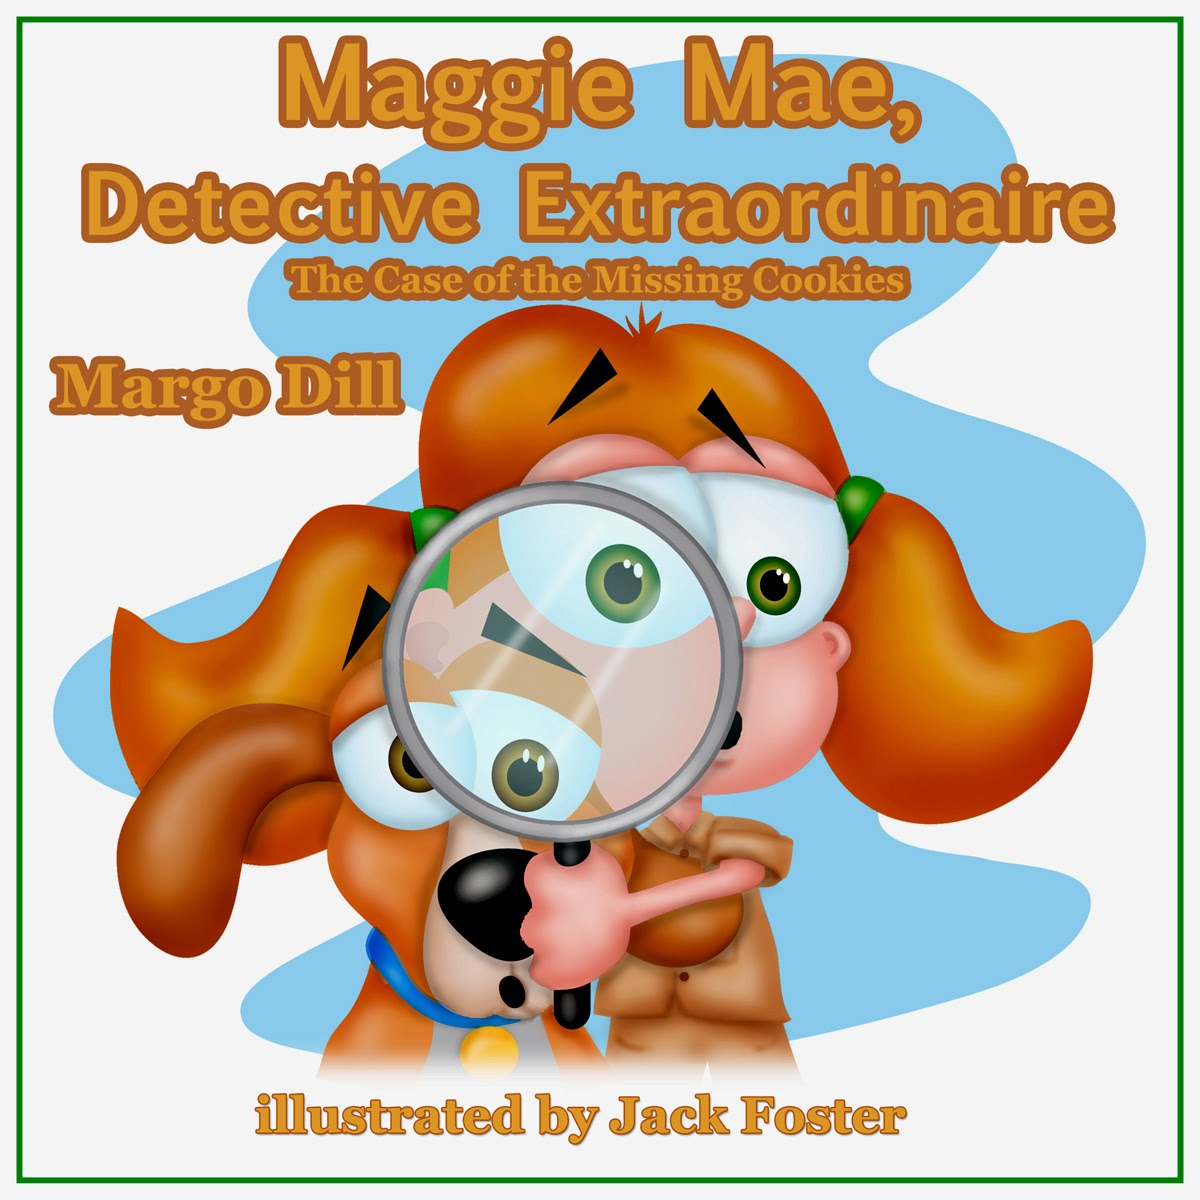 book review of a detective story